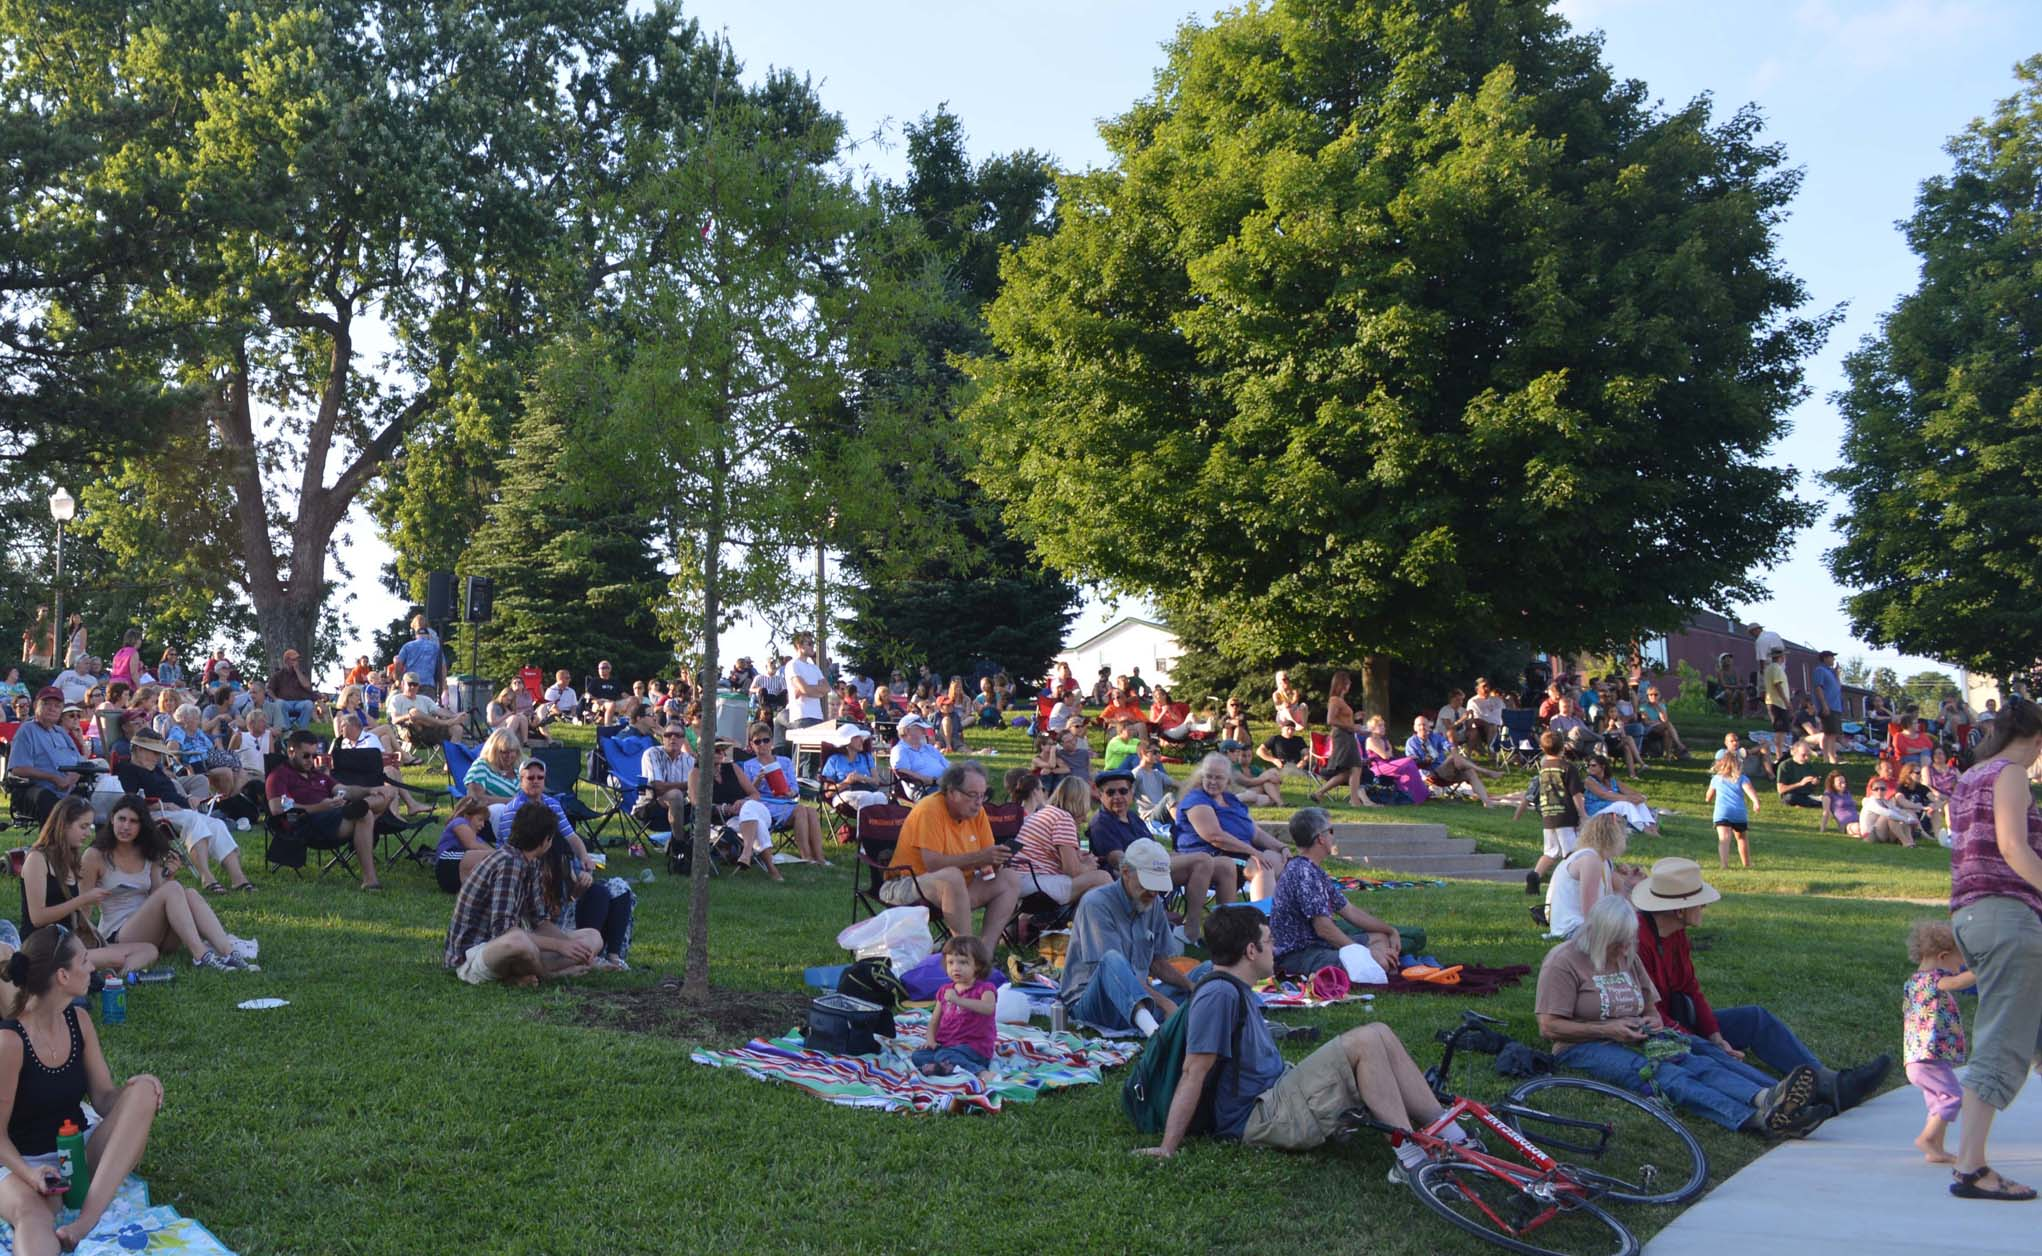 Blacksburg Summer Arts Festival on Henderson lawn